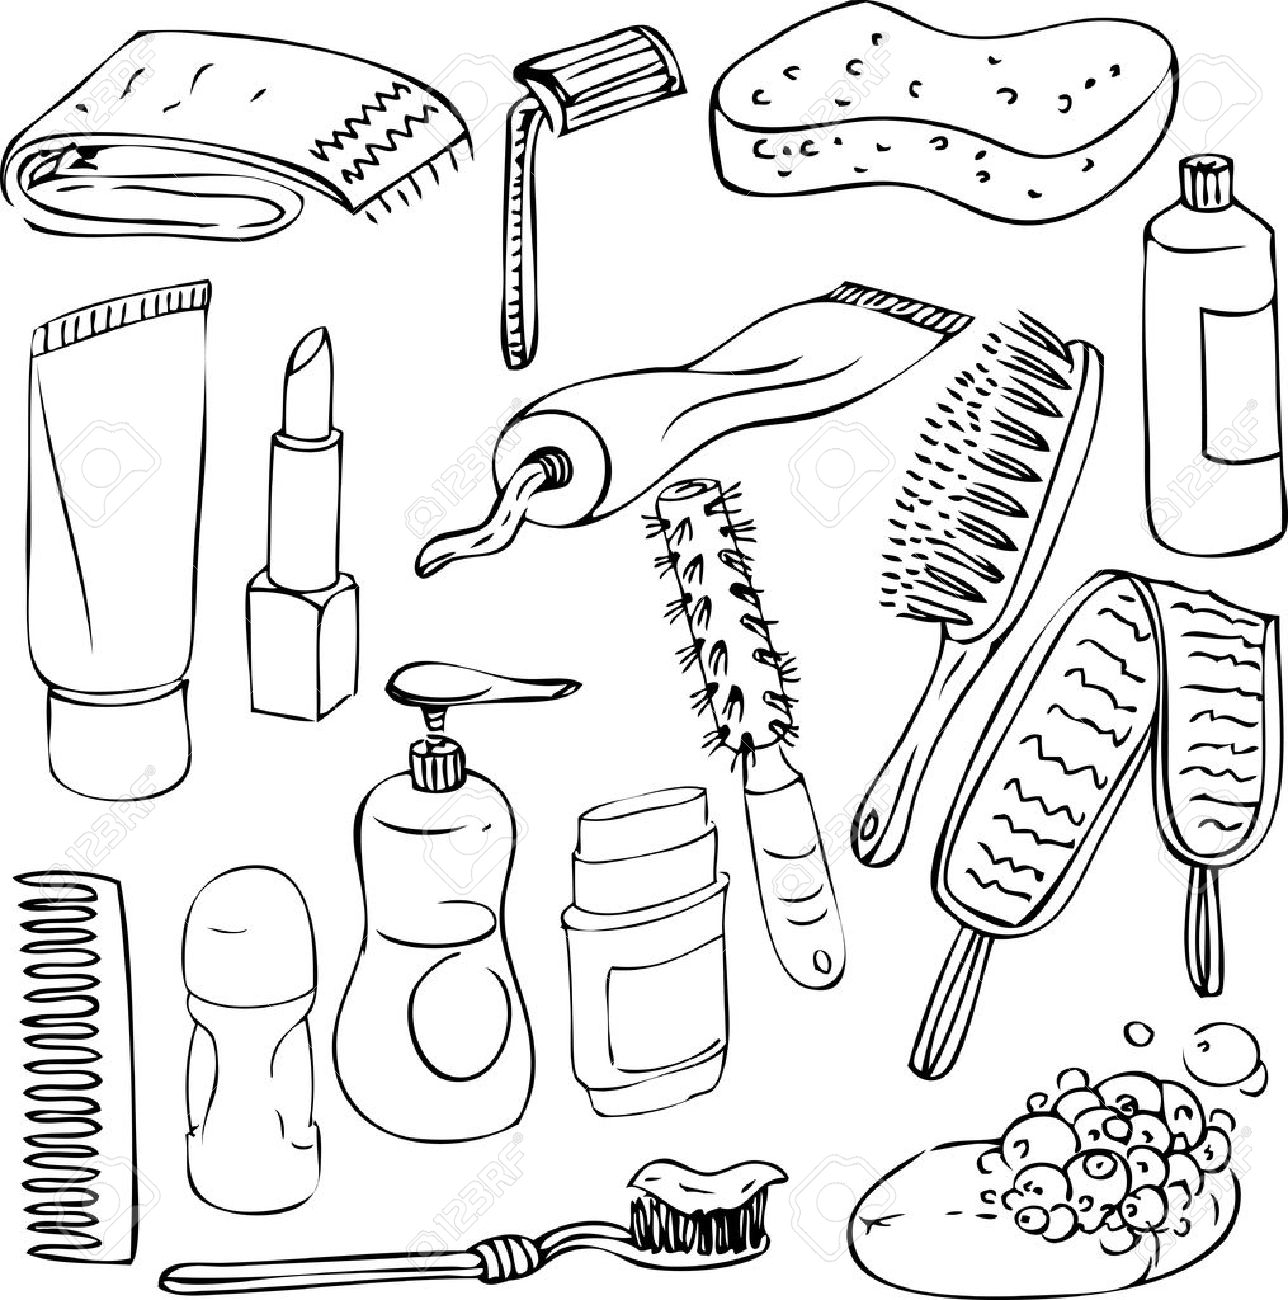 Sketch Of Bathroom Objects Hand Drawn Vector Elements Royalty Free - Drawing of bathroom